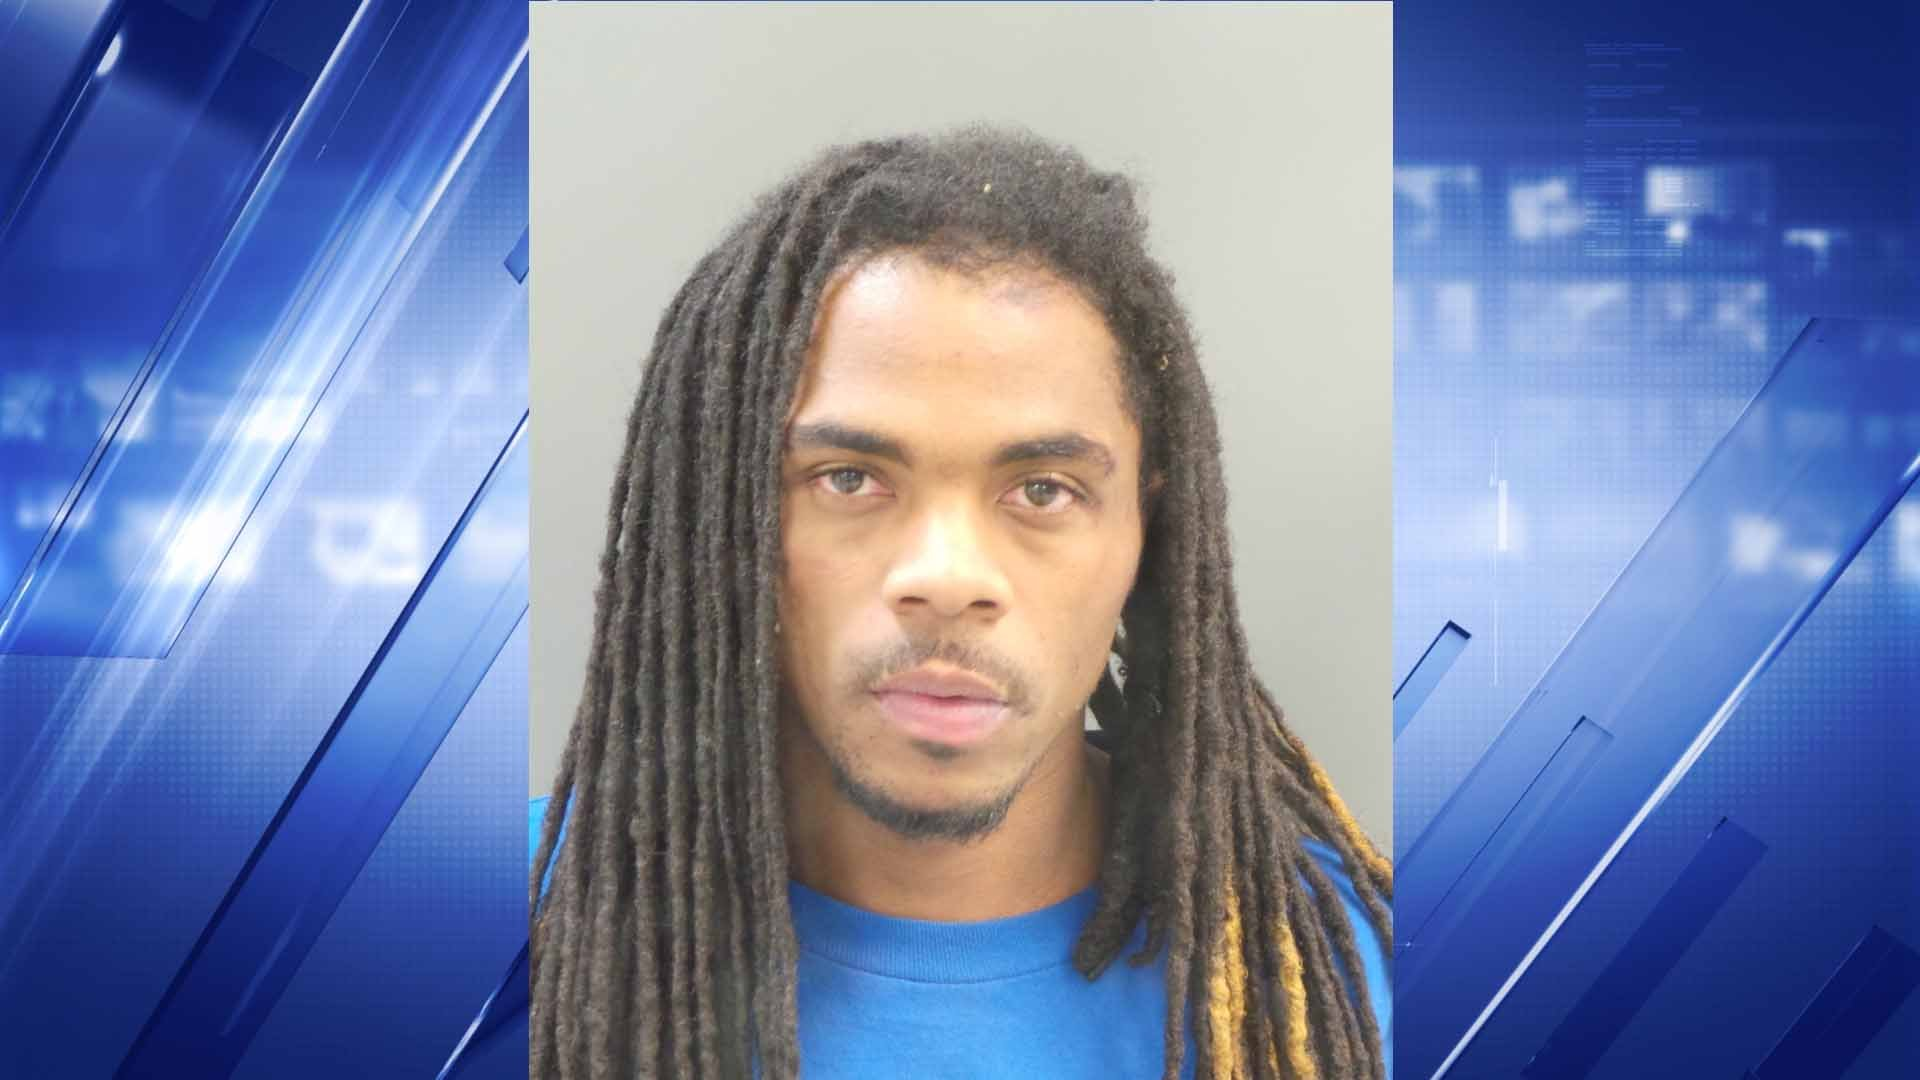 Dennis Owens is charged with attempted assault on a law enforcement officer